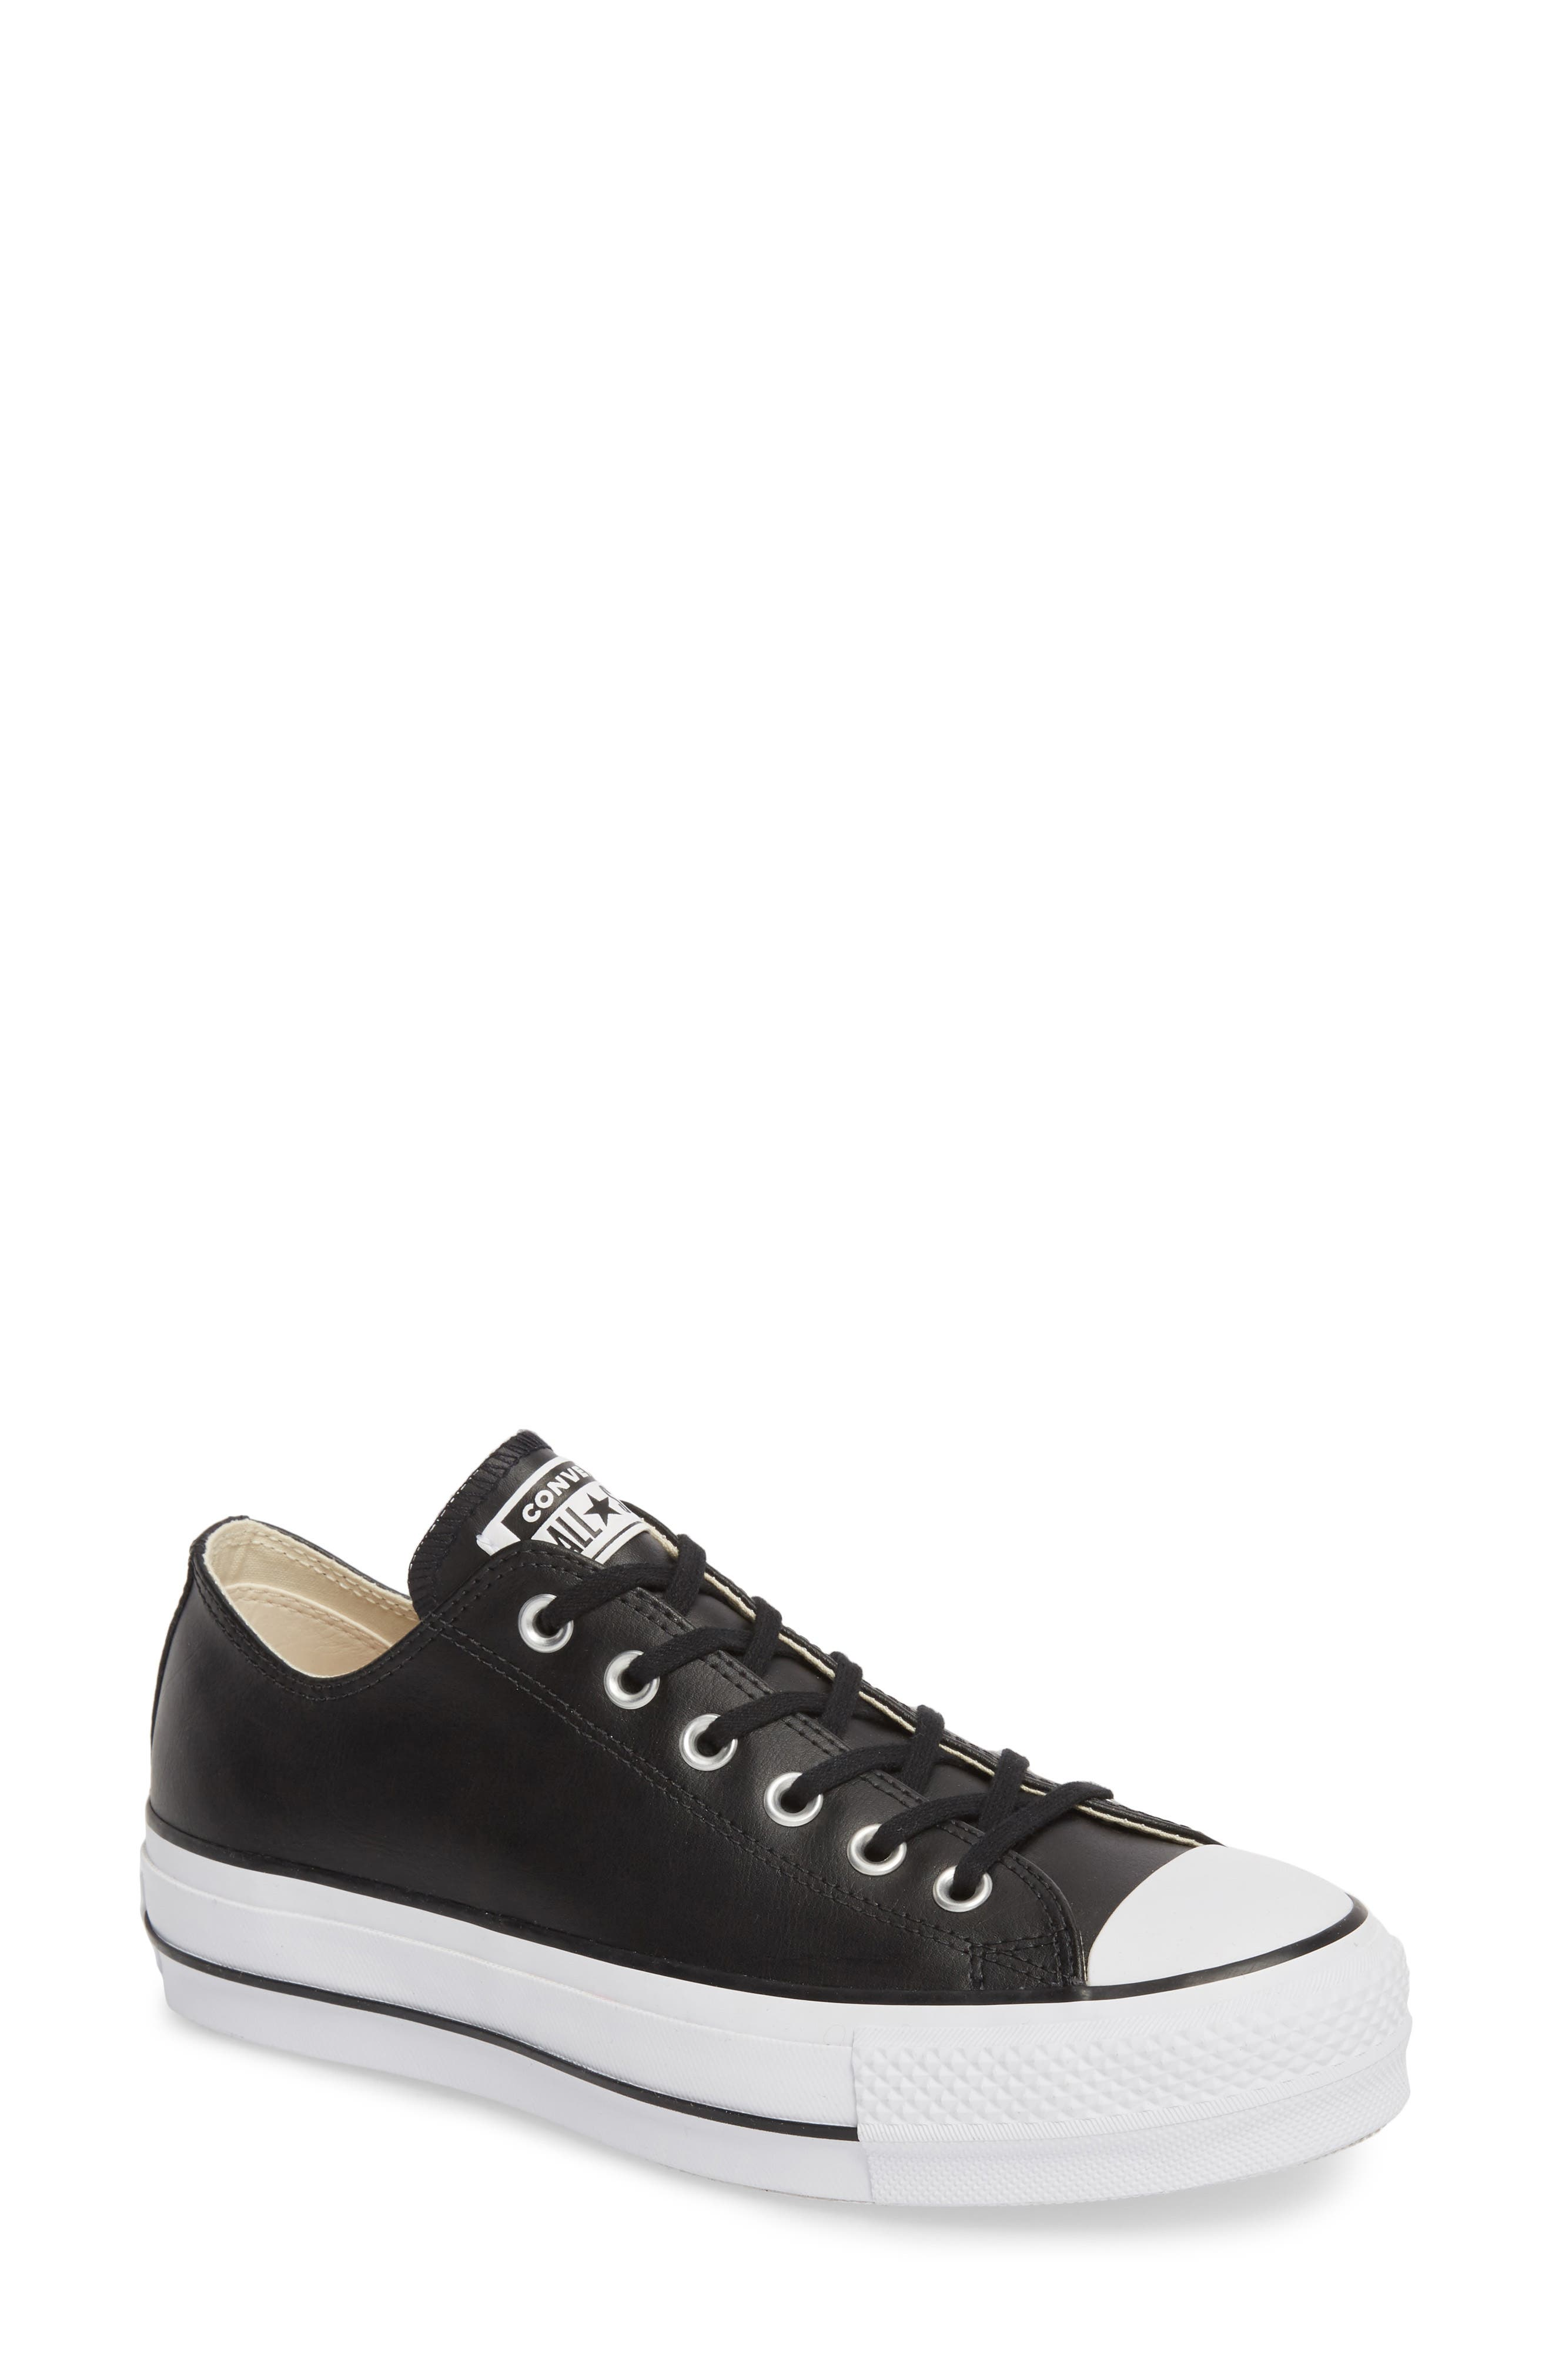 CONVERSE Chuck Taylor<sup>®</sup> All Star<sup>®</sup> Platform Sneaker, Main, color, BLACK/ BLACK LEATHER